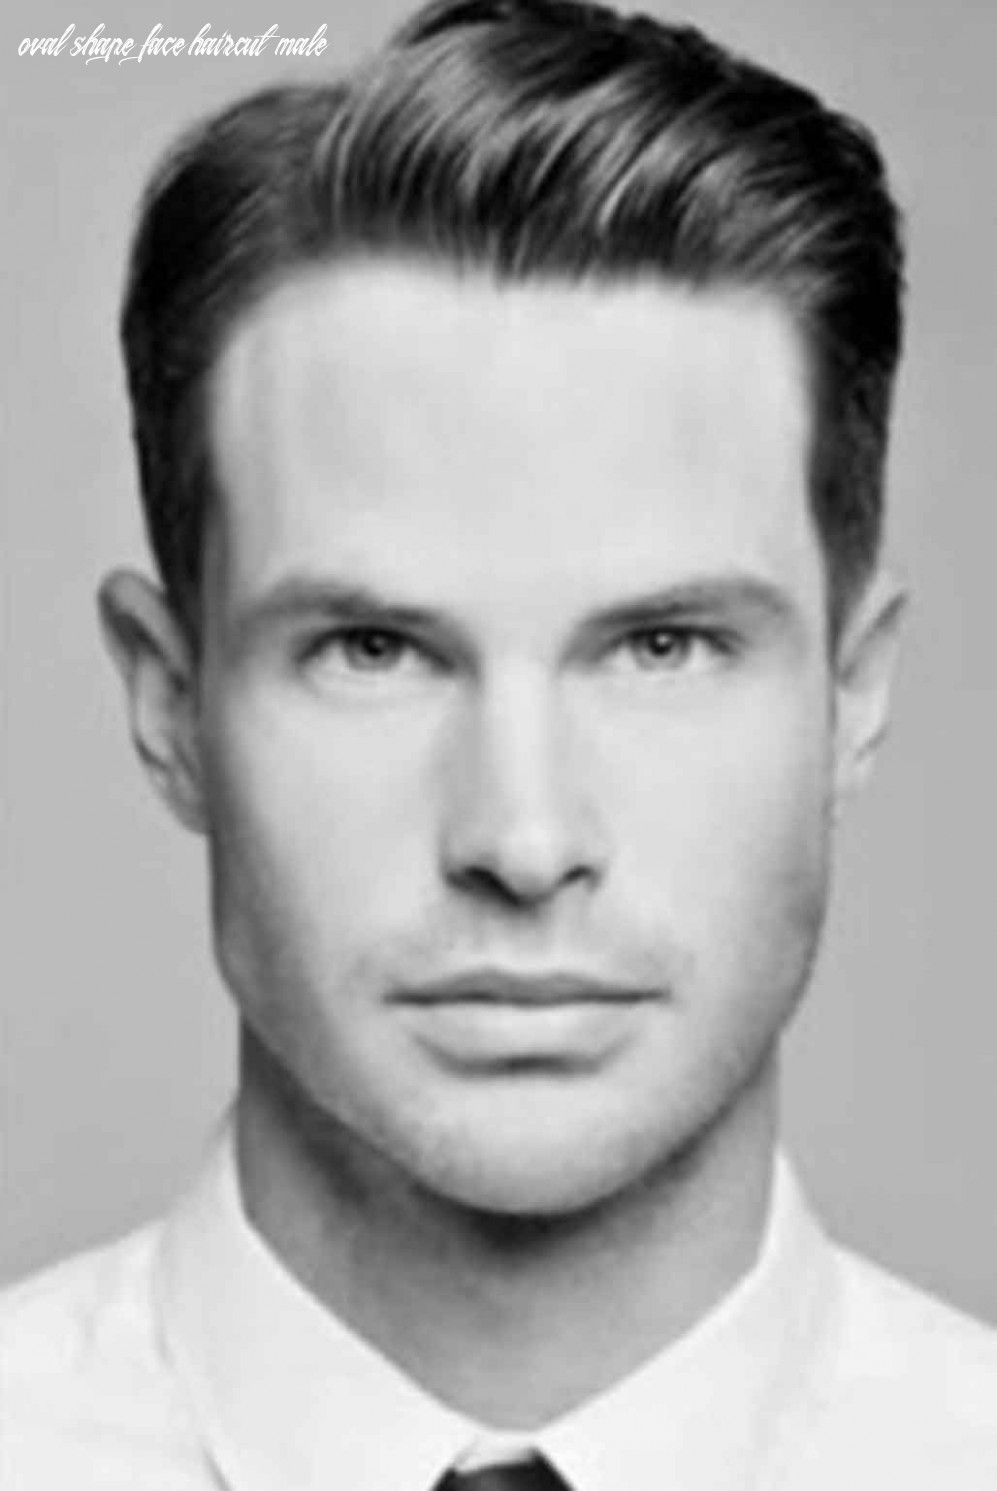 12 Oval Shape Face Haircut Male In 2020 Oblong Face Hairstyles Oblong Face Shape Oval Face Hairstyles